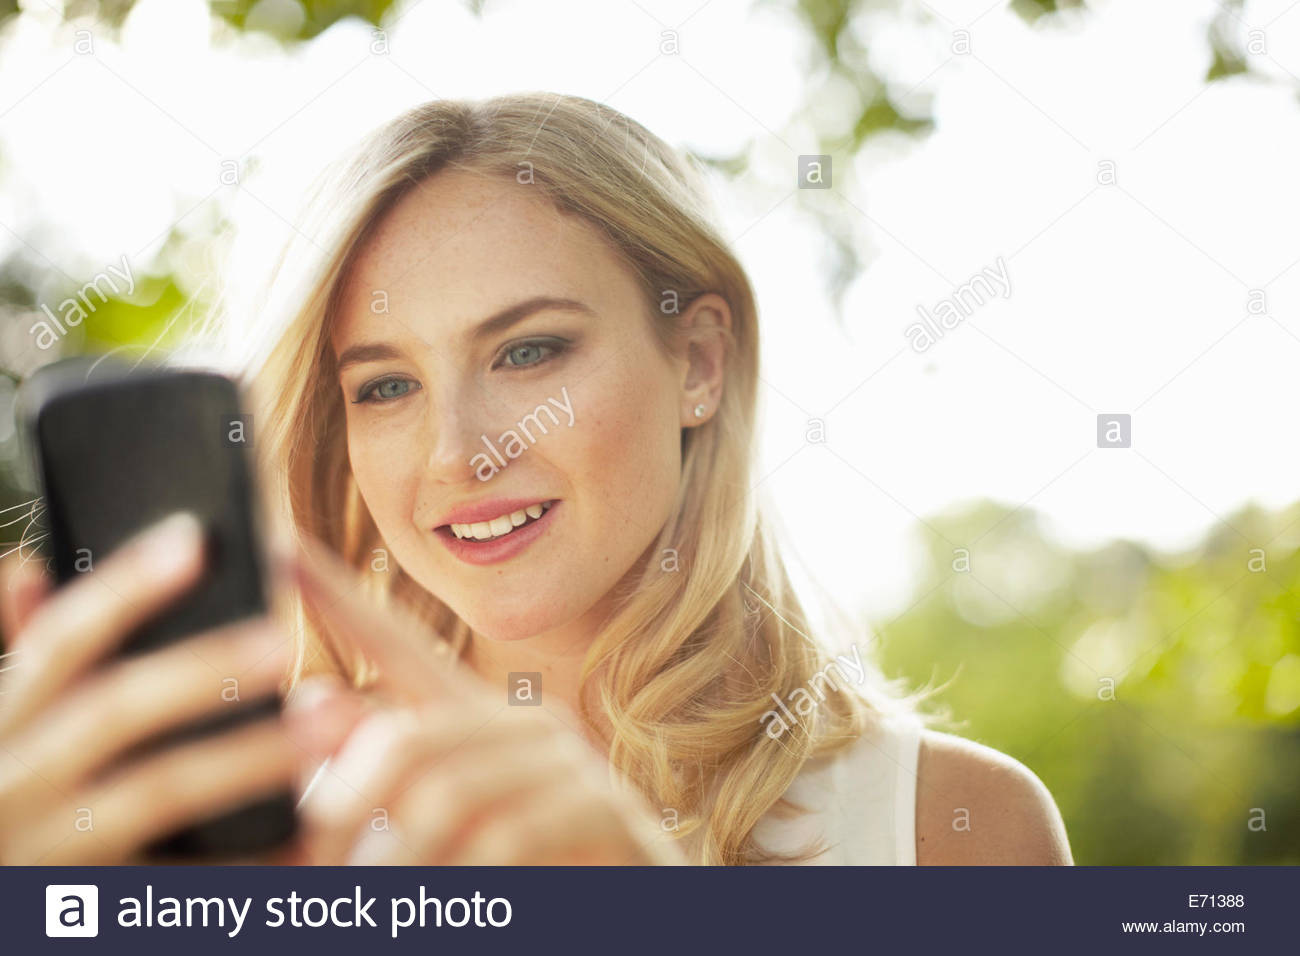 Young woman using smartphone touchscreen in park - Stock Image